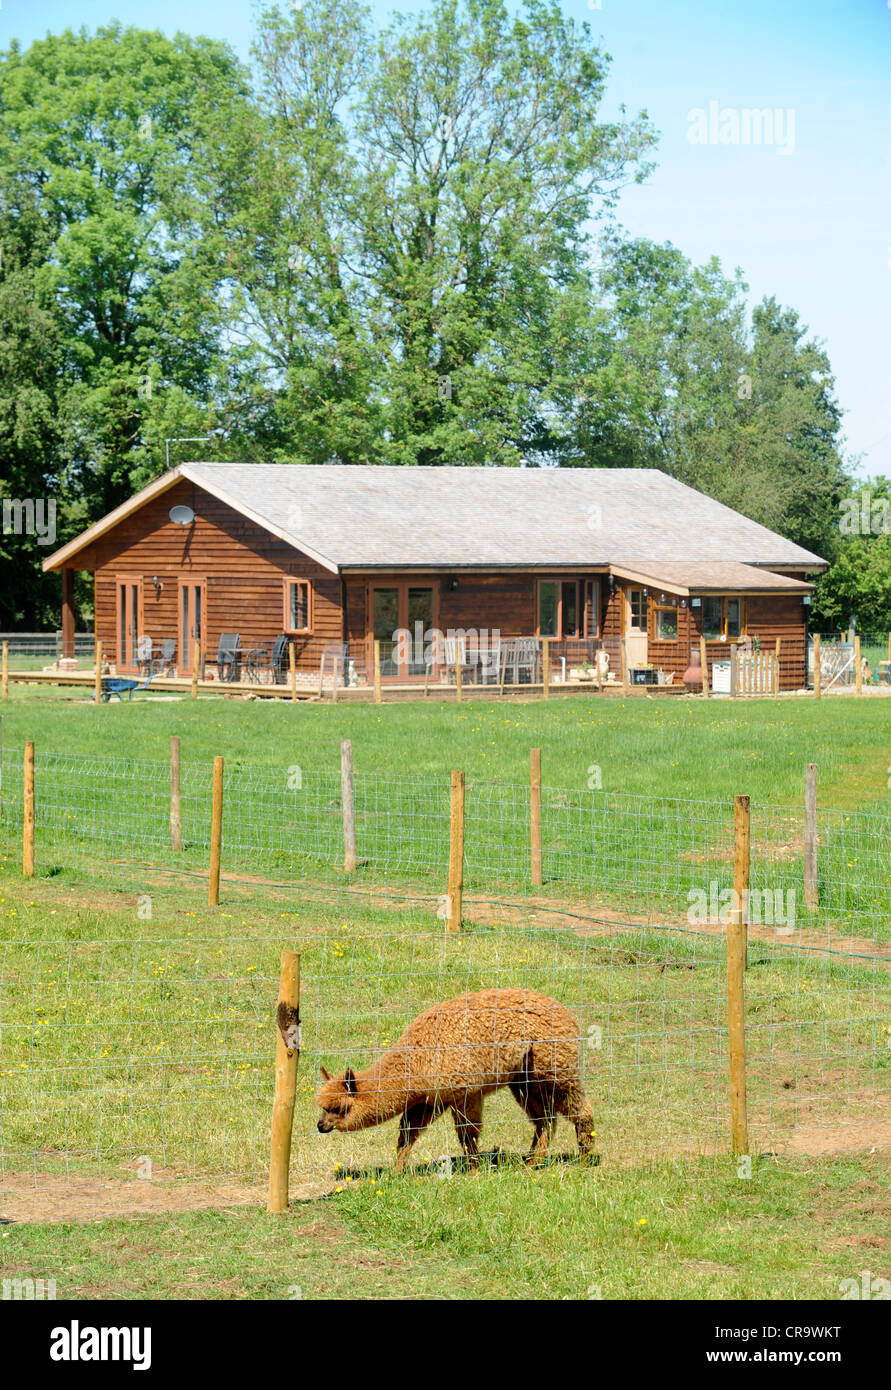 a log cabin or wooden chalet home on an alpaca farm a style of a log cabin or wooden chalet home on an alpaca farm a style of construction